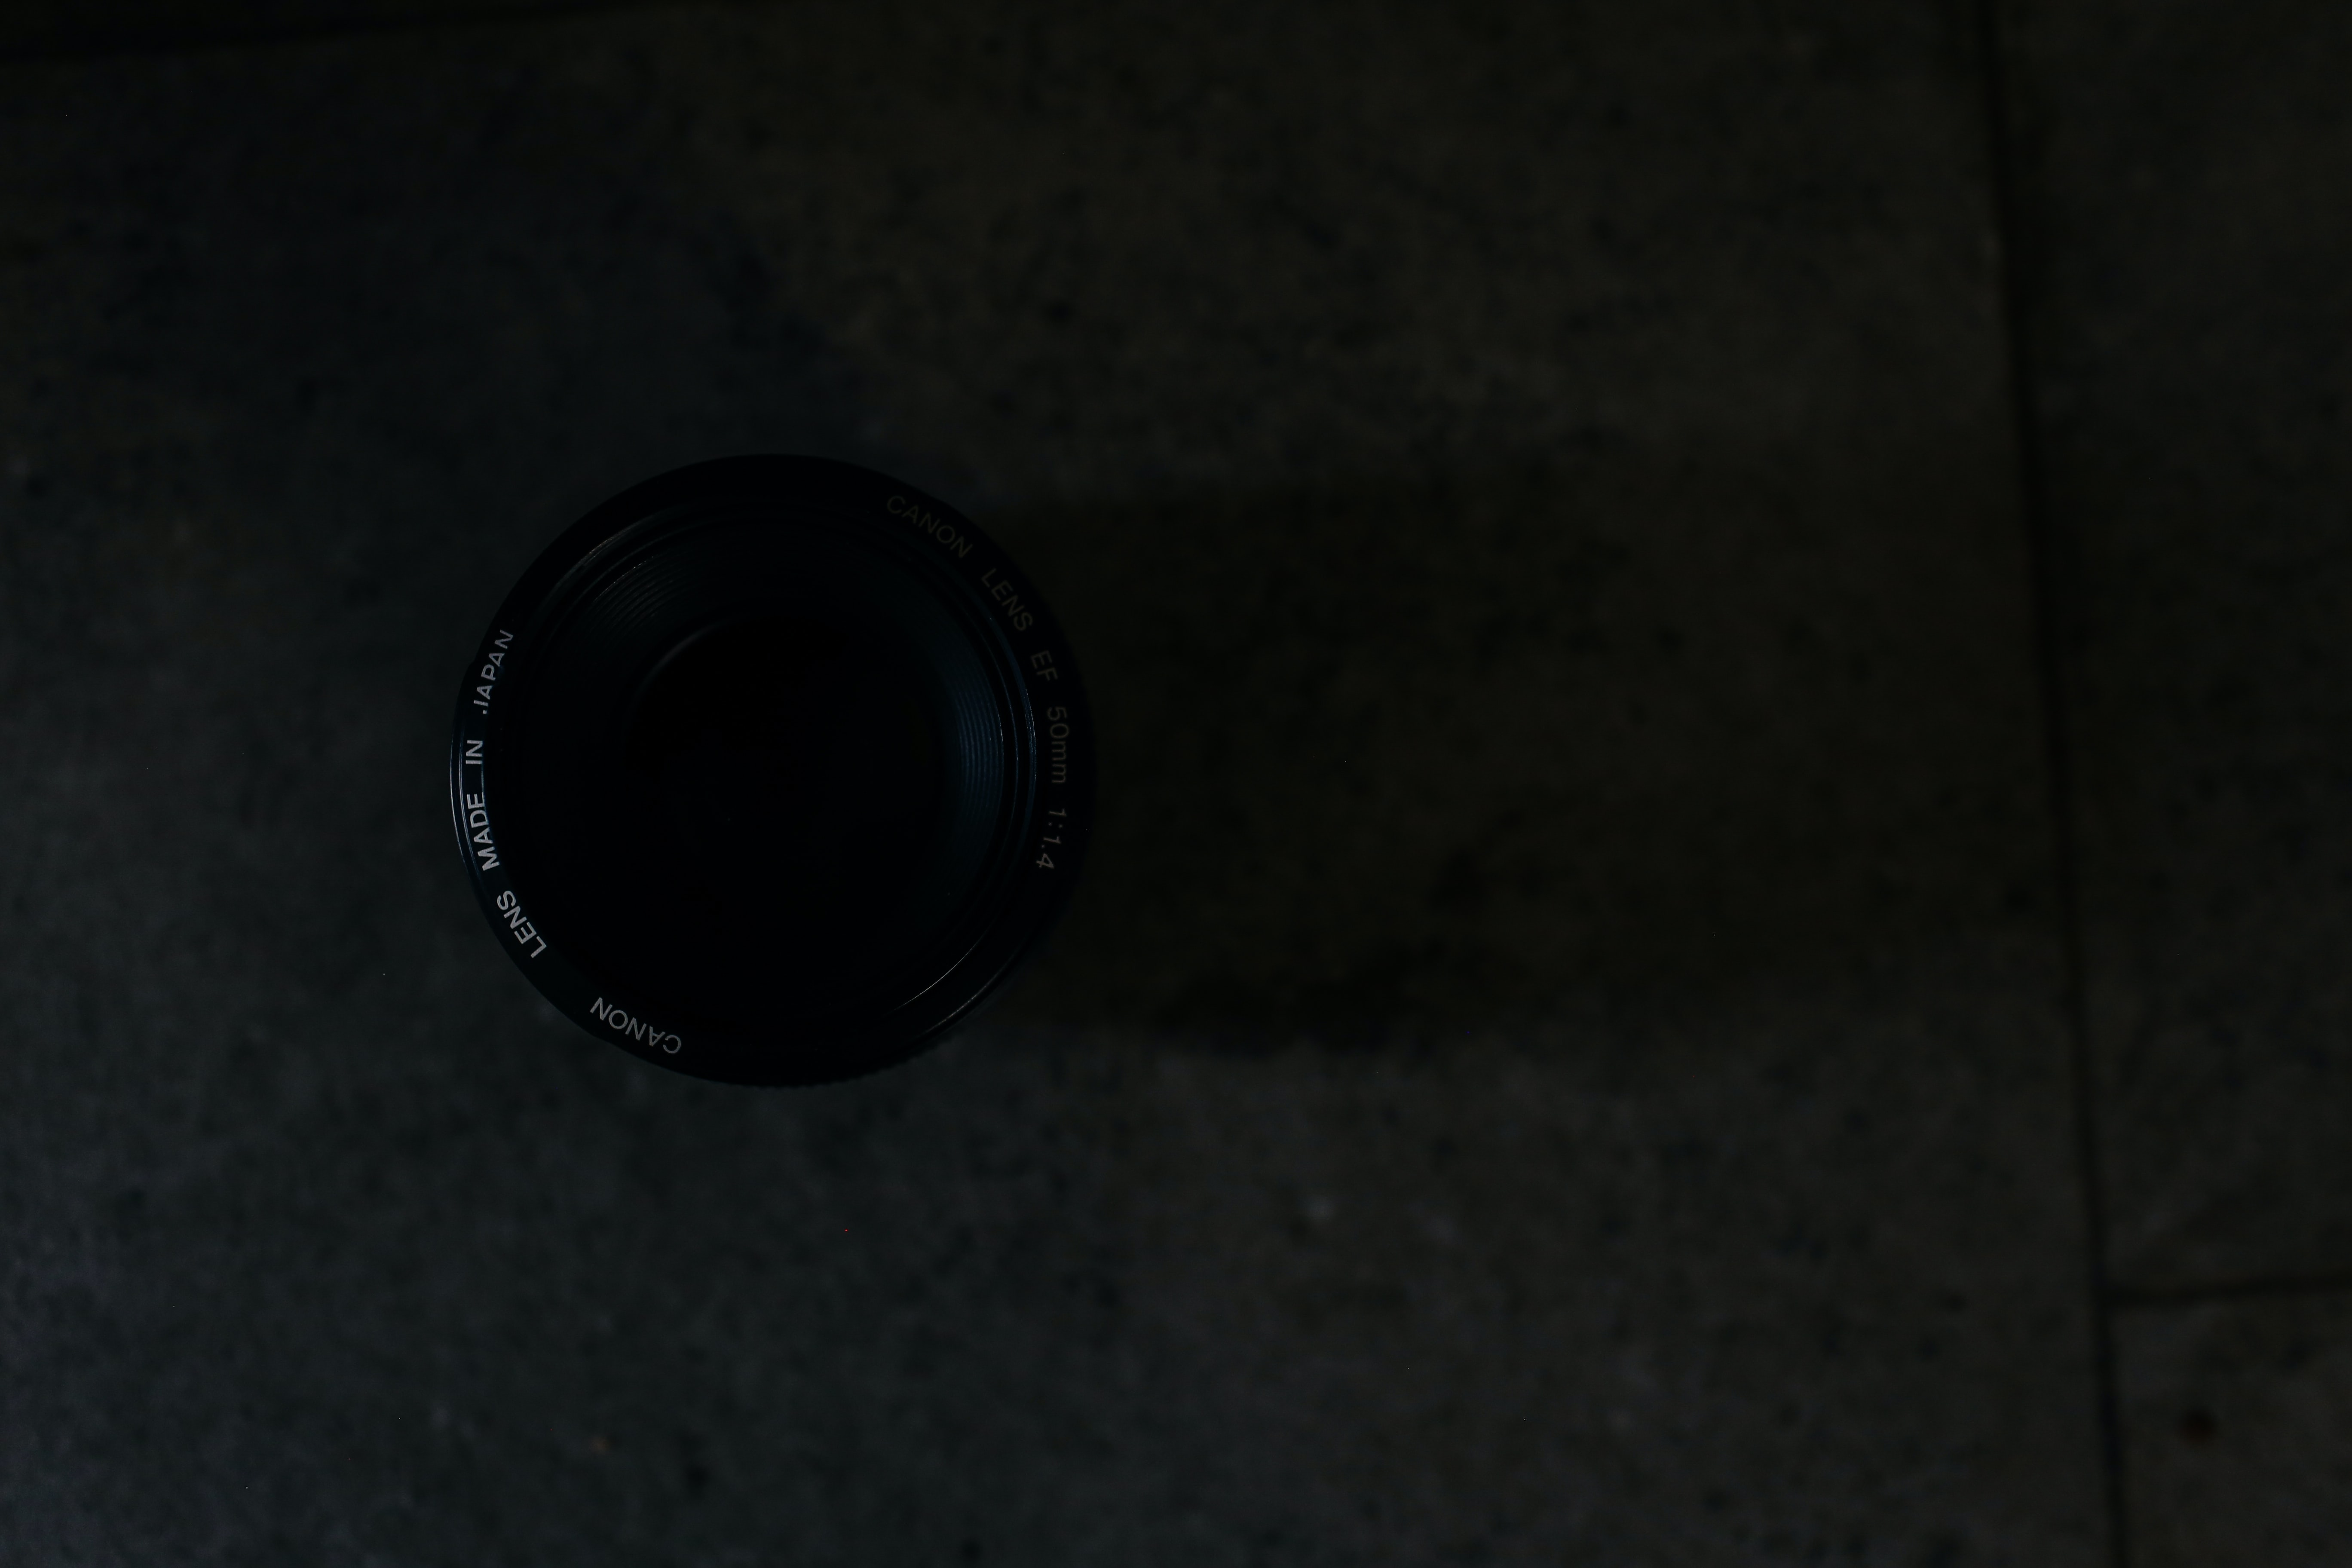 A canon lens resting on a stone floor at night